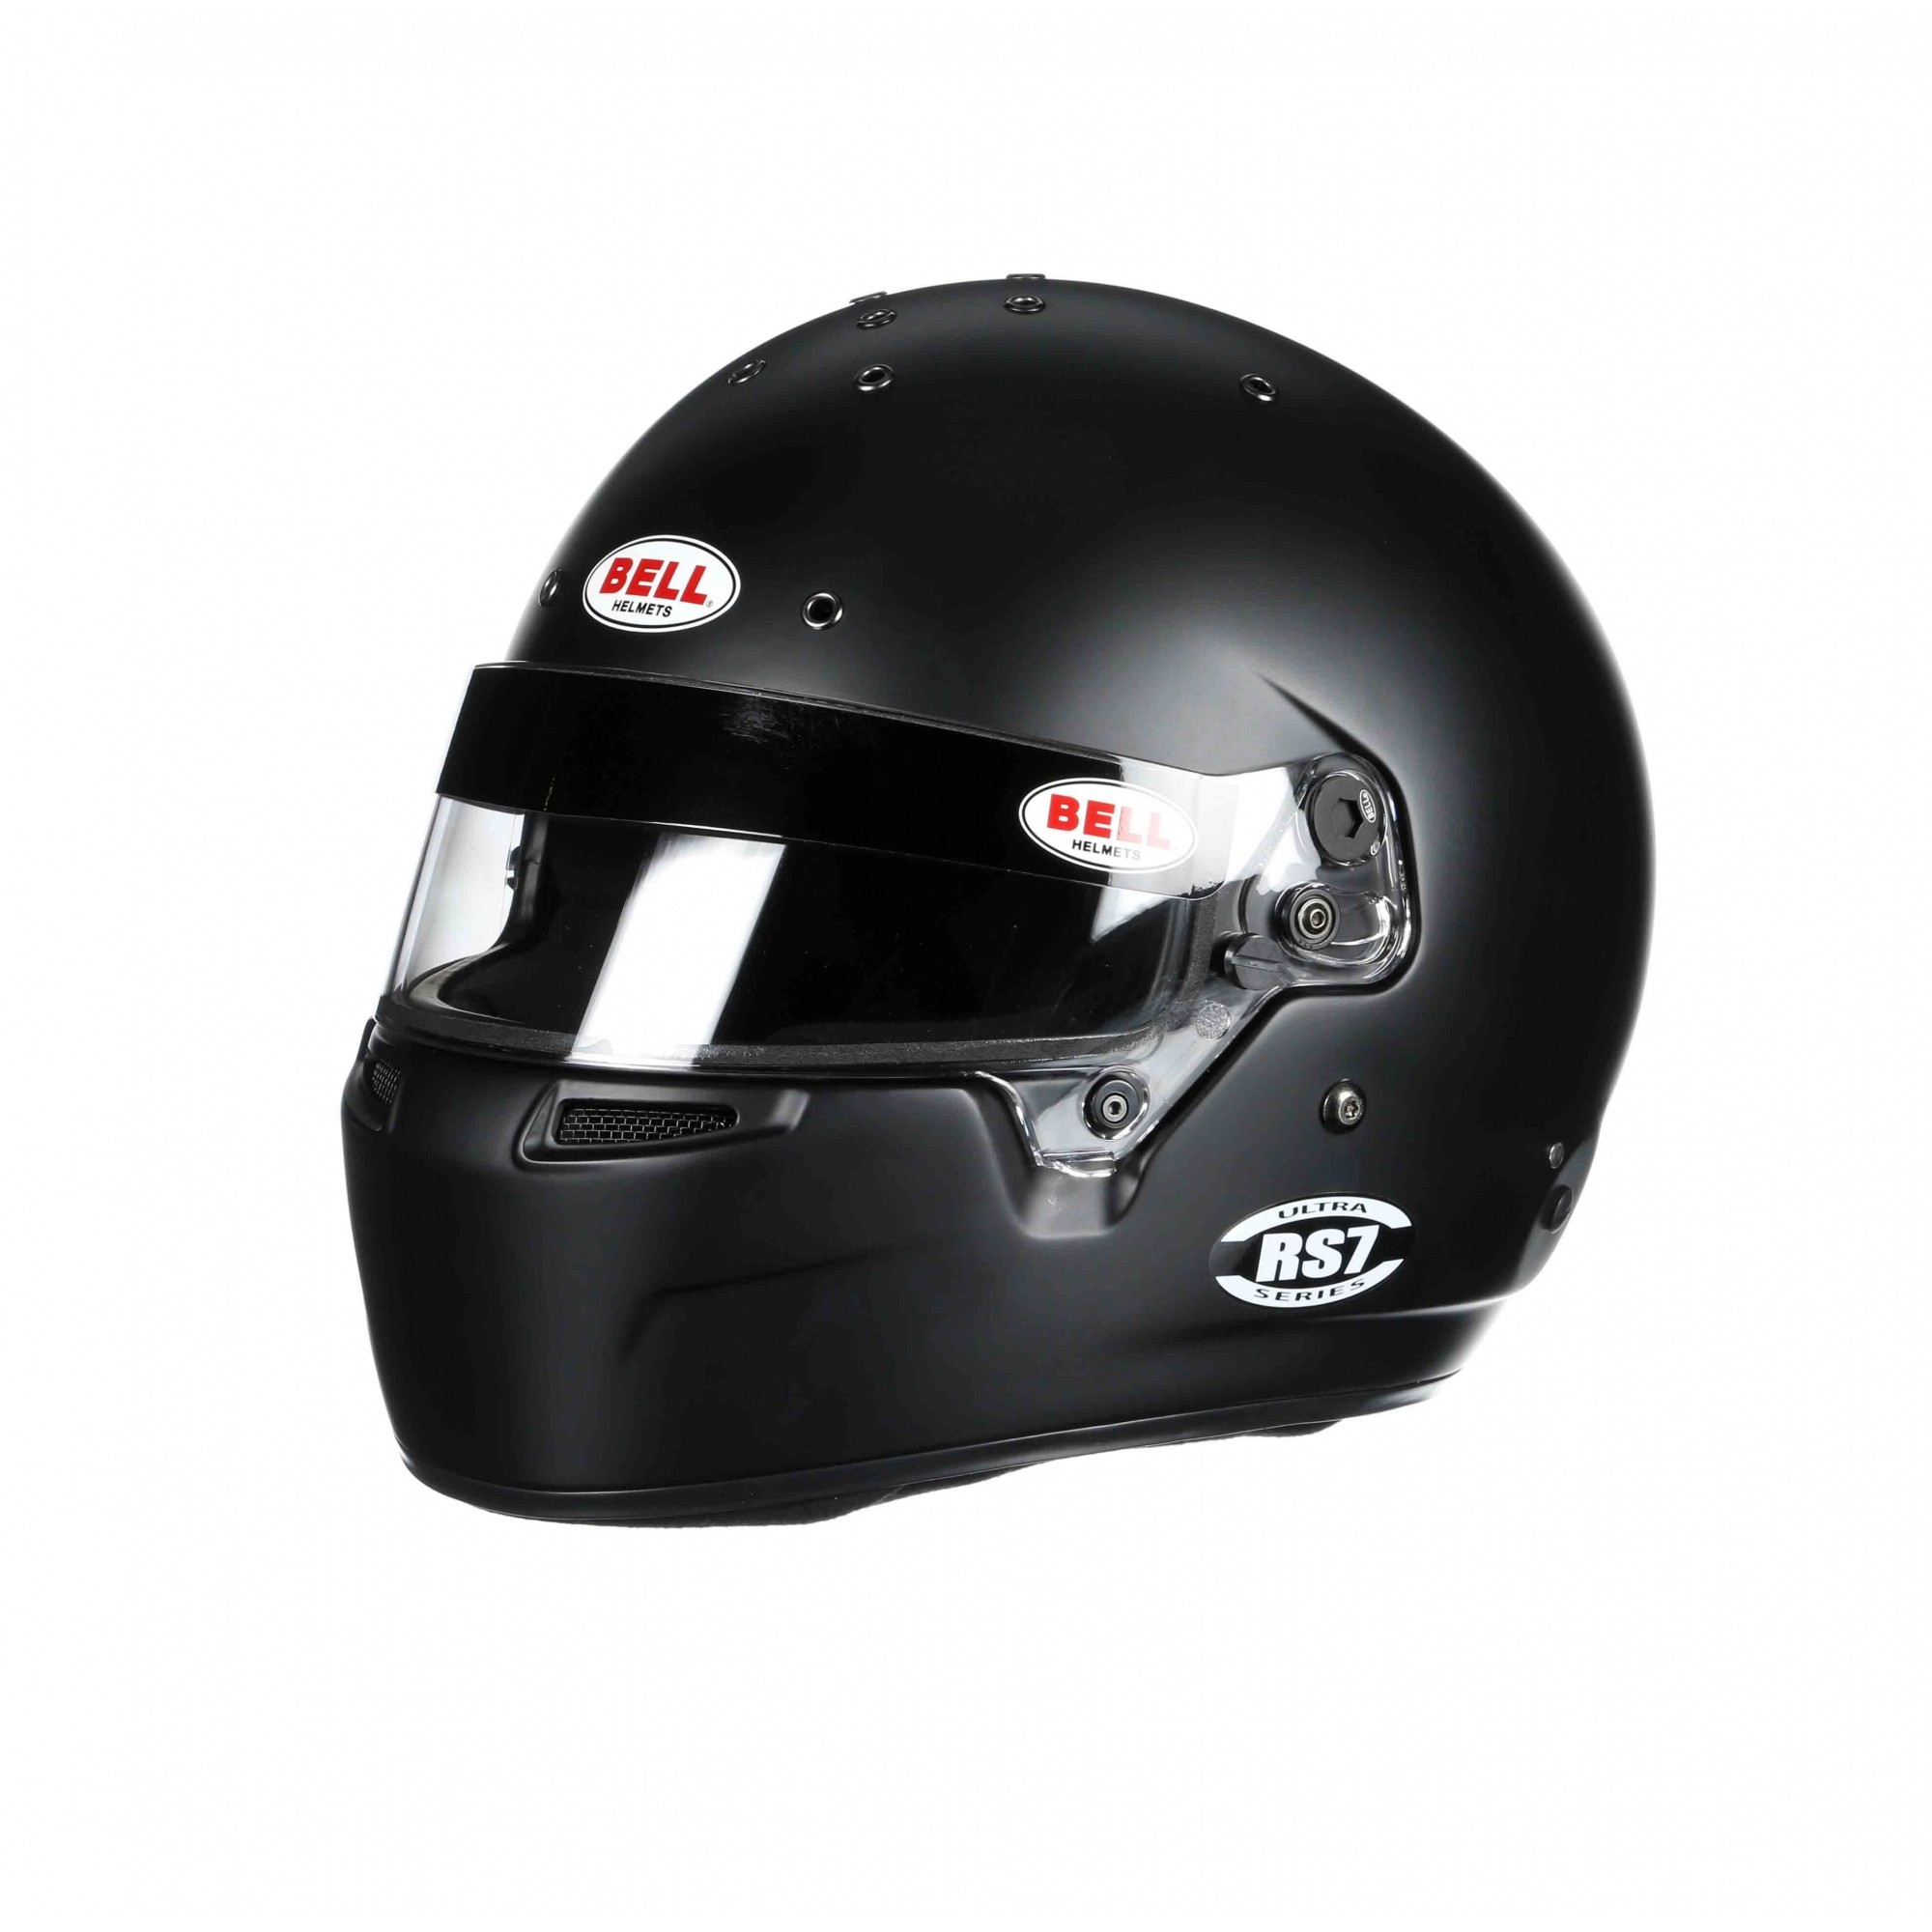 Capacete Bell RS7 Pro